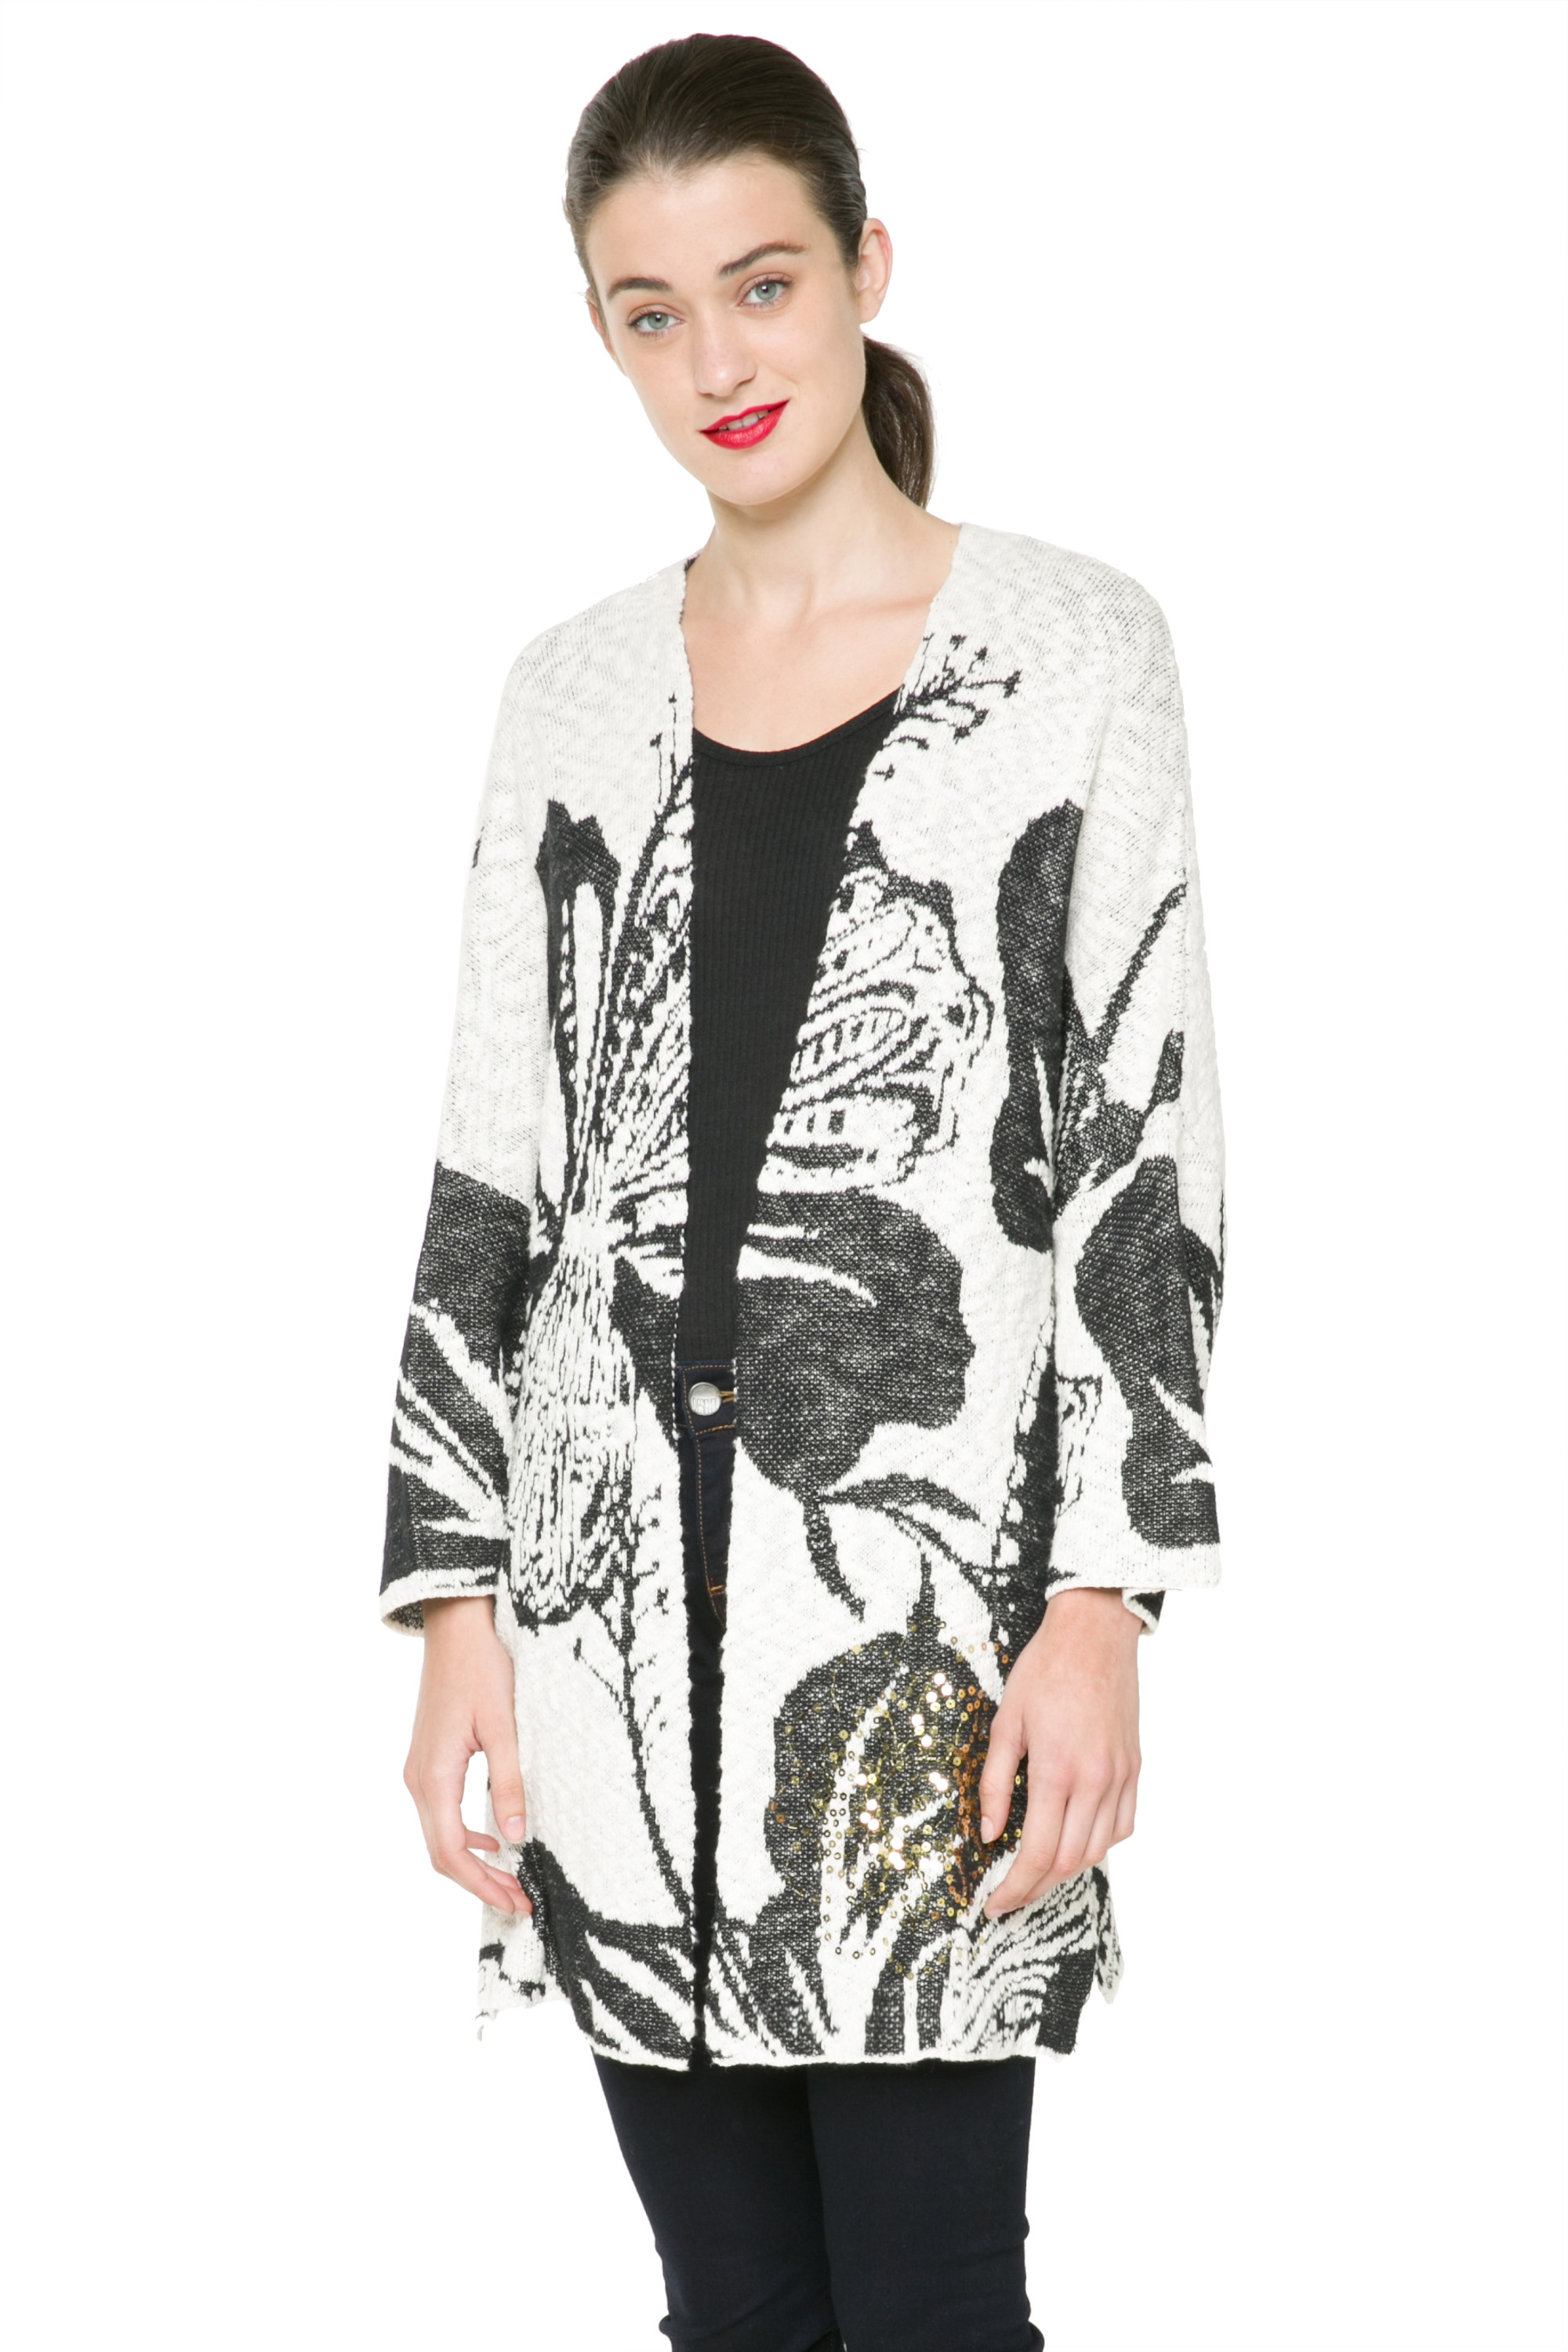 Details about Desigual Oversized Black & Off White Mykonos Cardigan S XXL UK 10 18 RRP109